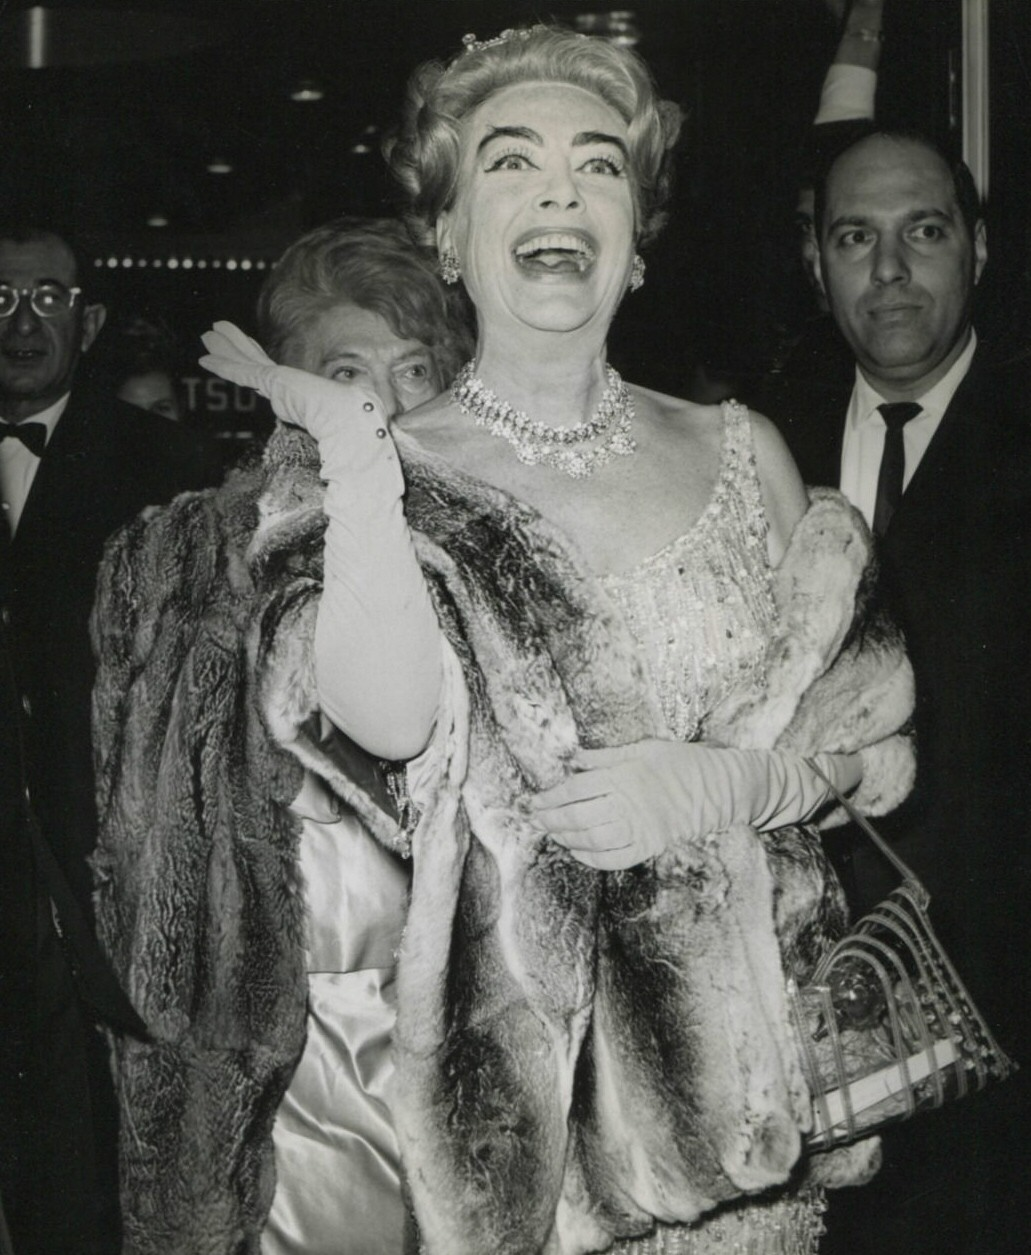 10/21/64 at the NYC Criterion Theatre premiere of 'My Fair Lady.'